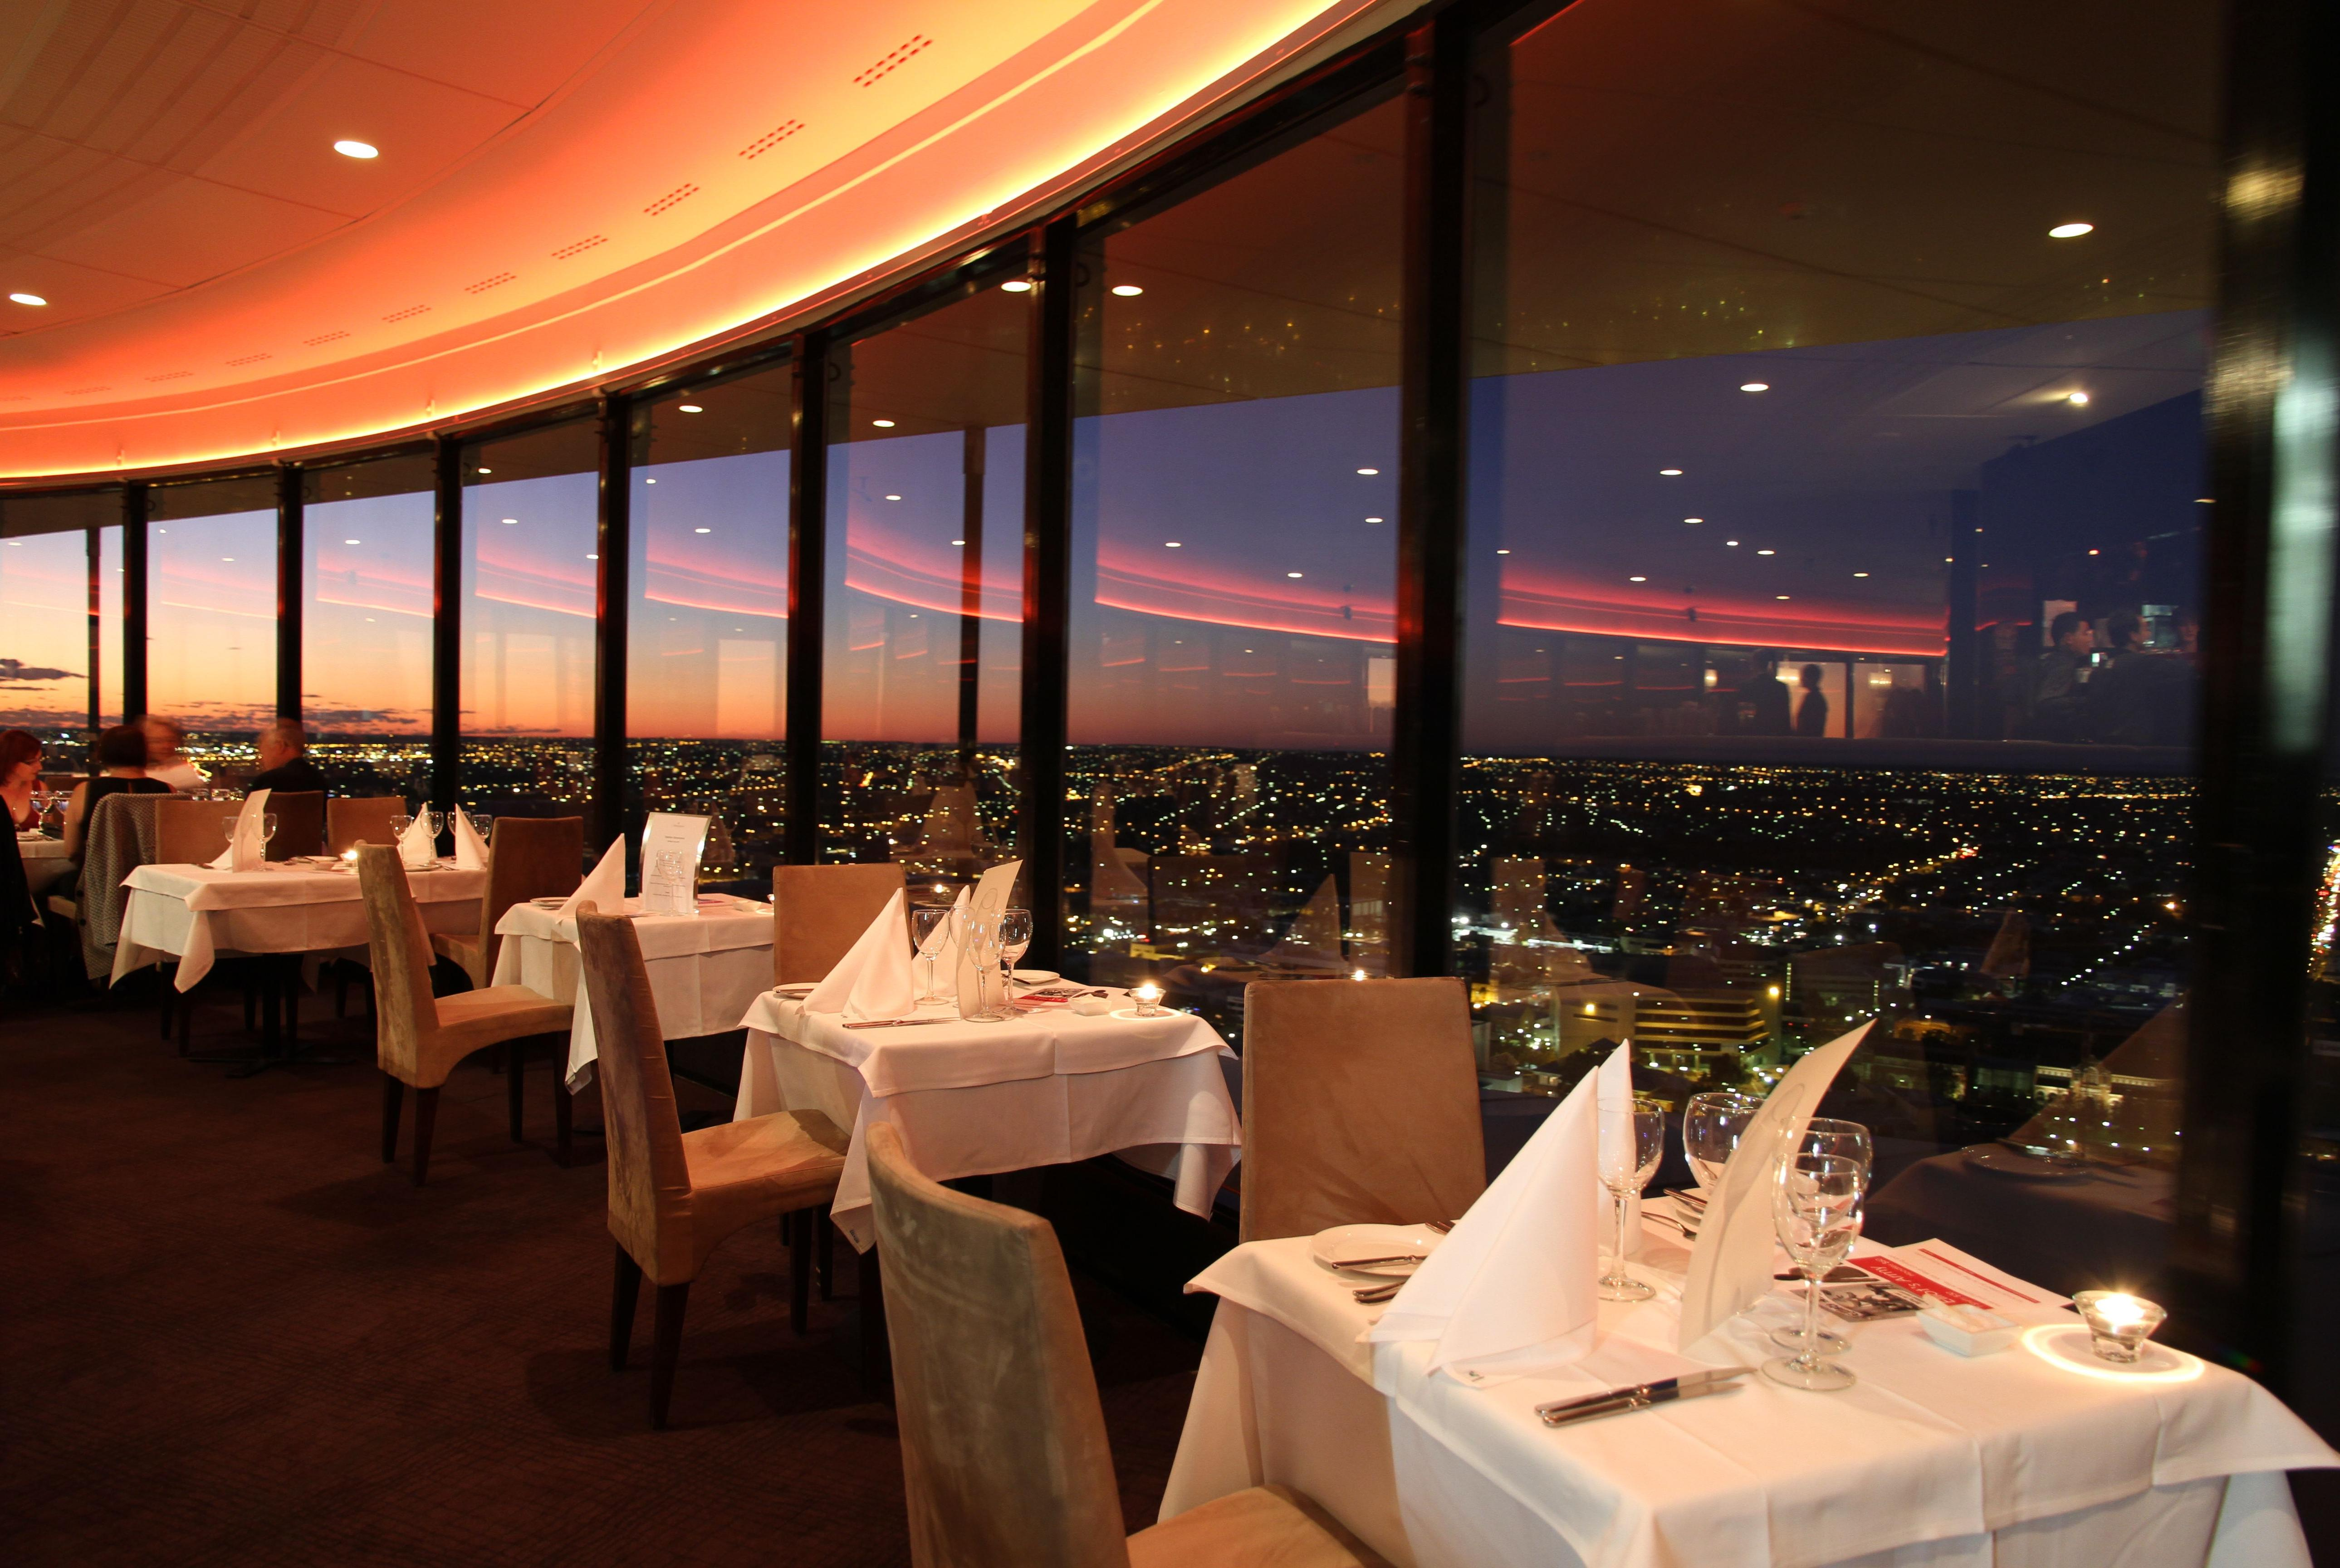 Restaurant with Nice Panorama of the City 708.59 Kb